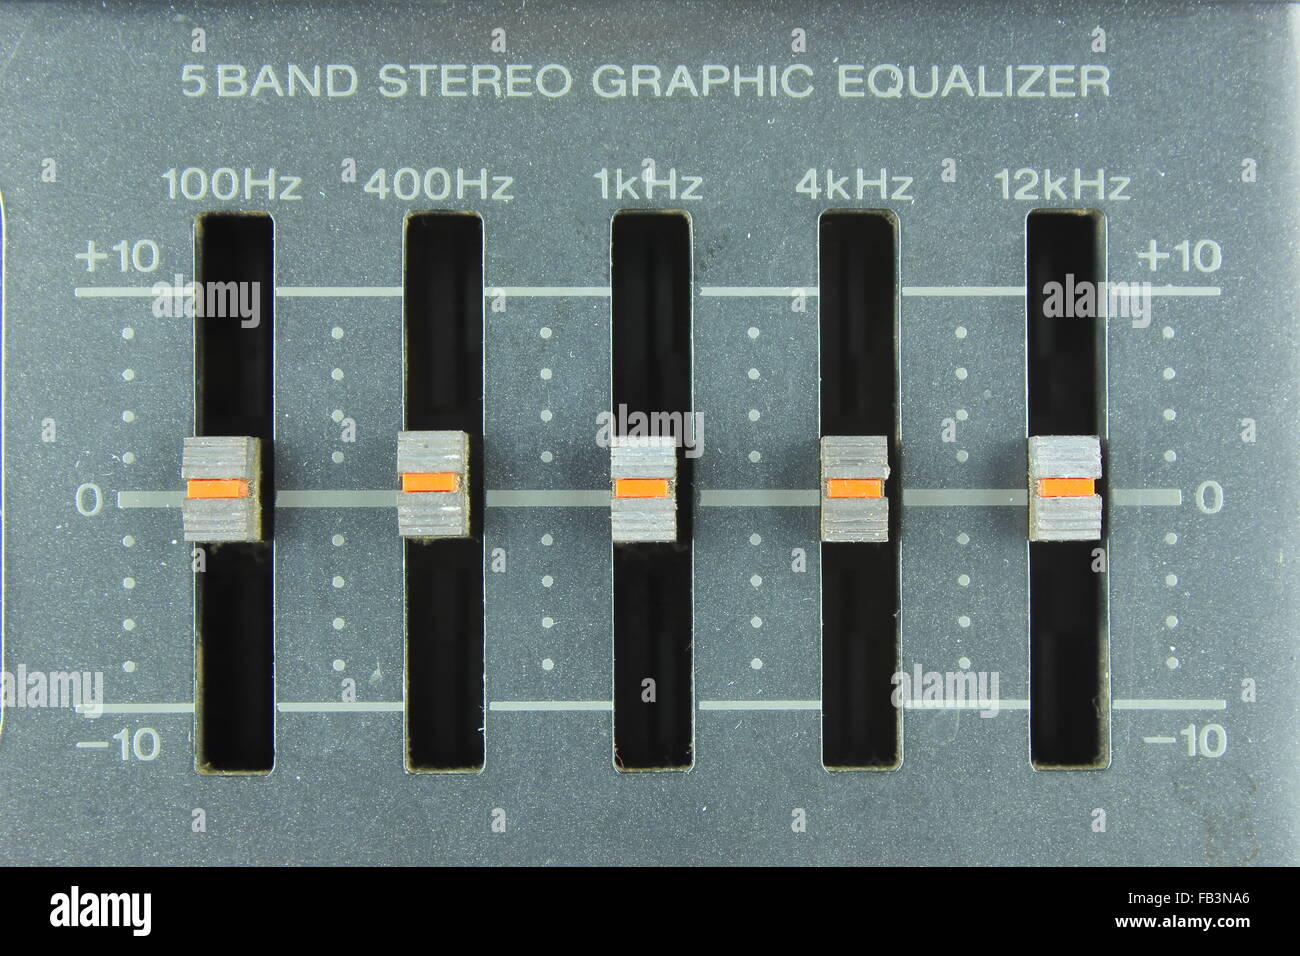 Frequency Equalizer Stock Photos Images 5 Band Graphic Equaliser Circuit Diagram Five Stereo Image